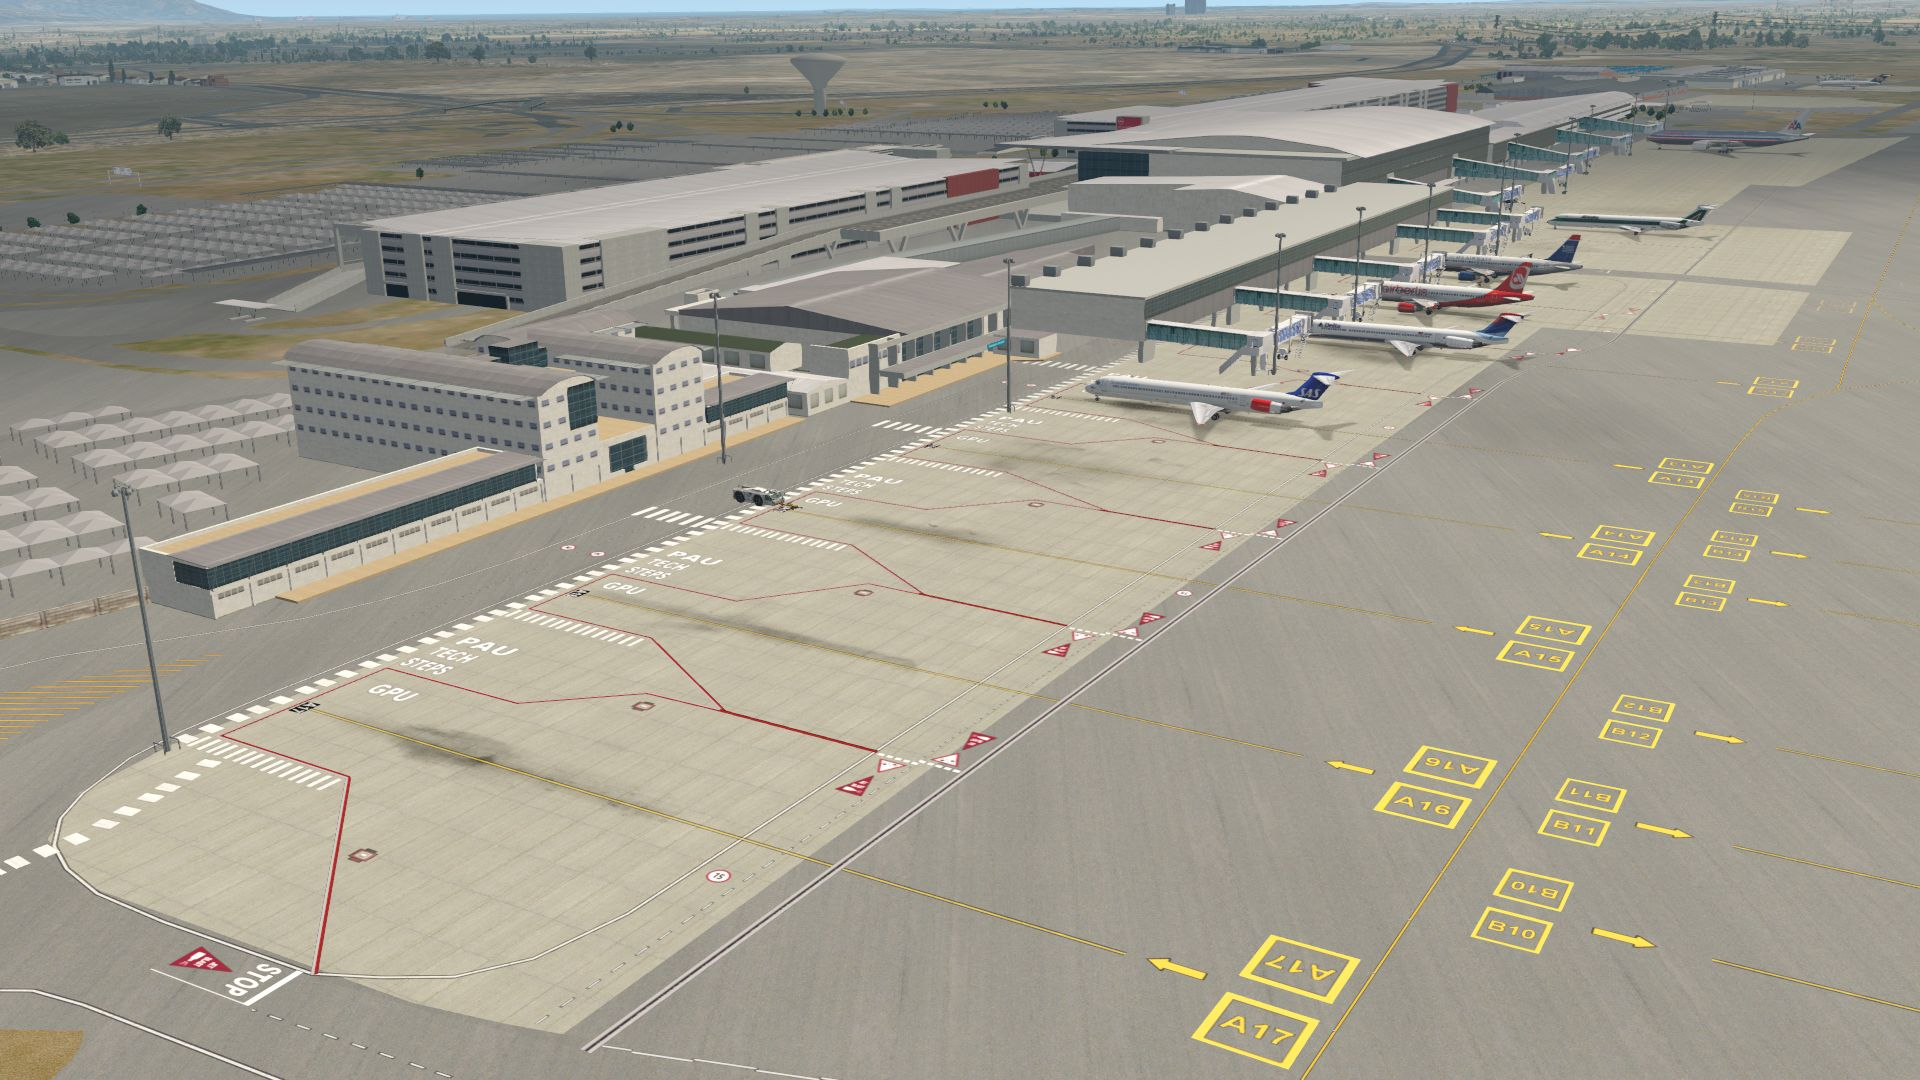 NMG SIMULATIONS - NMG CAPE TOWN INTL AIRPORT V5 X-PLANE 11